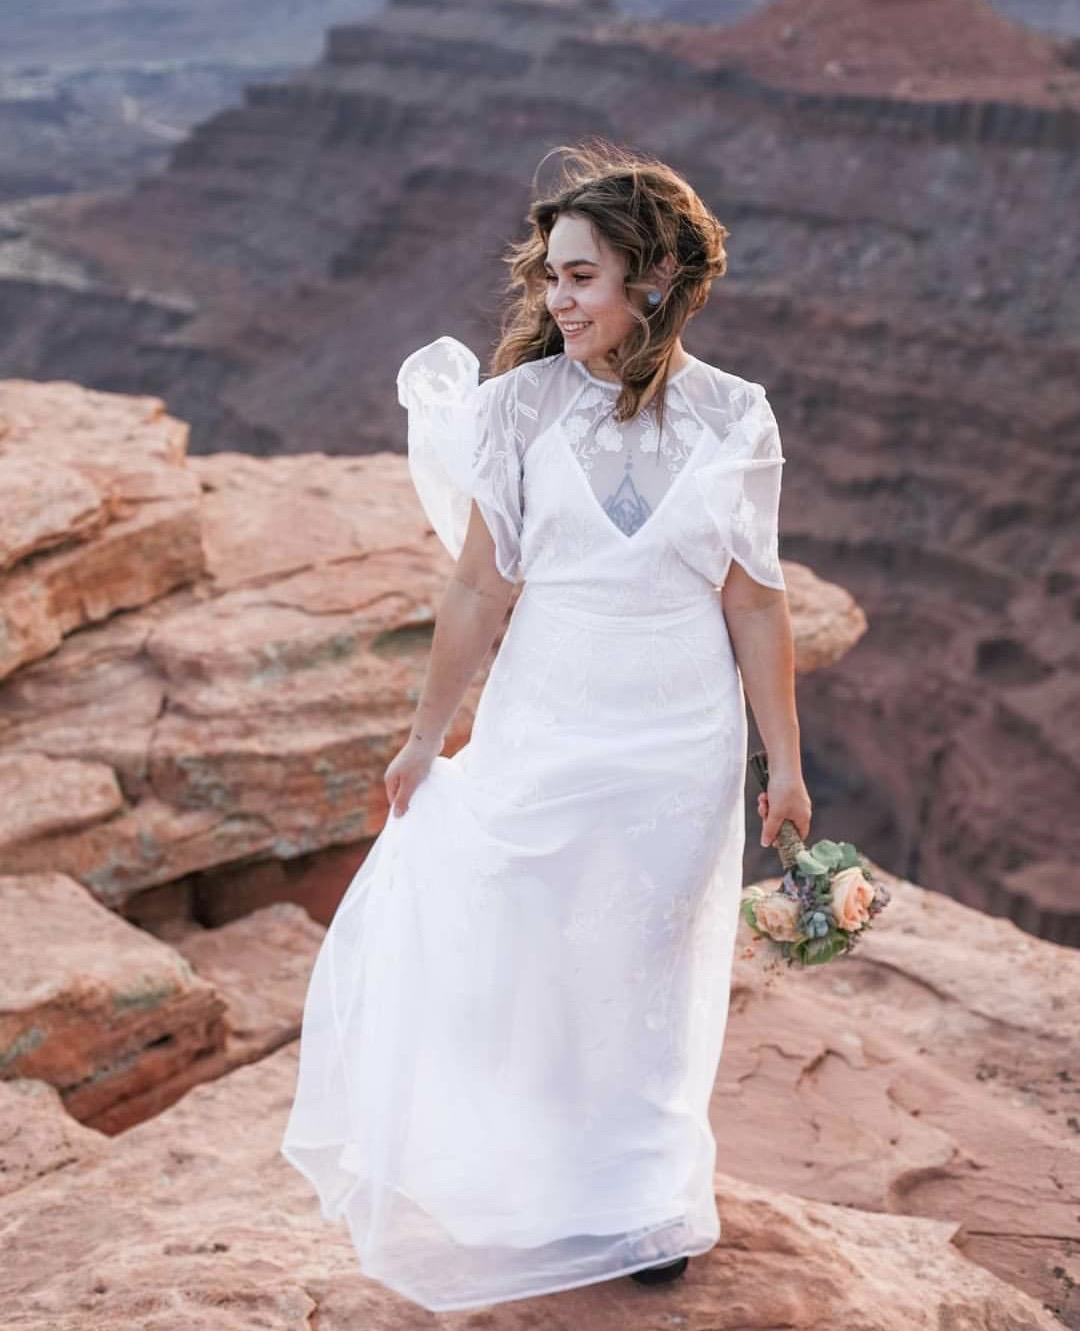 Moab wedding adventure wedding adventure elopement deser wedding